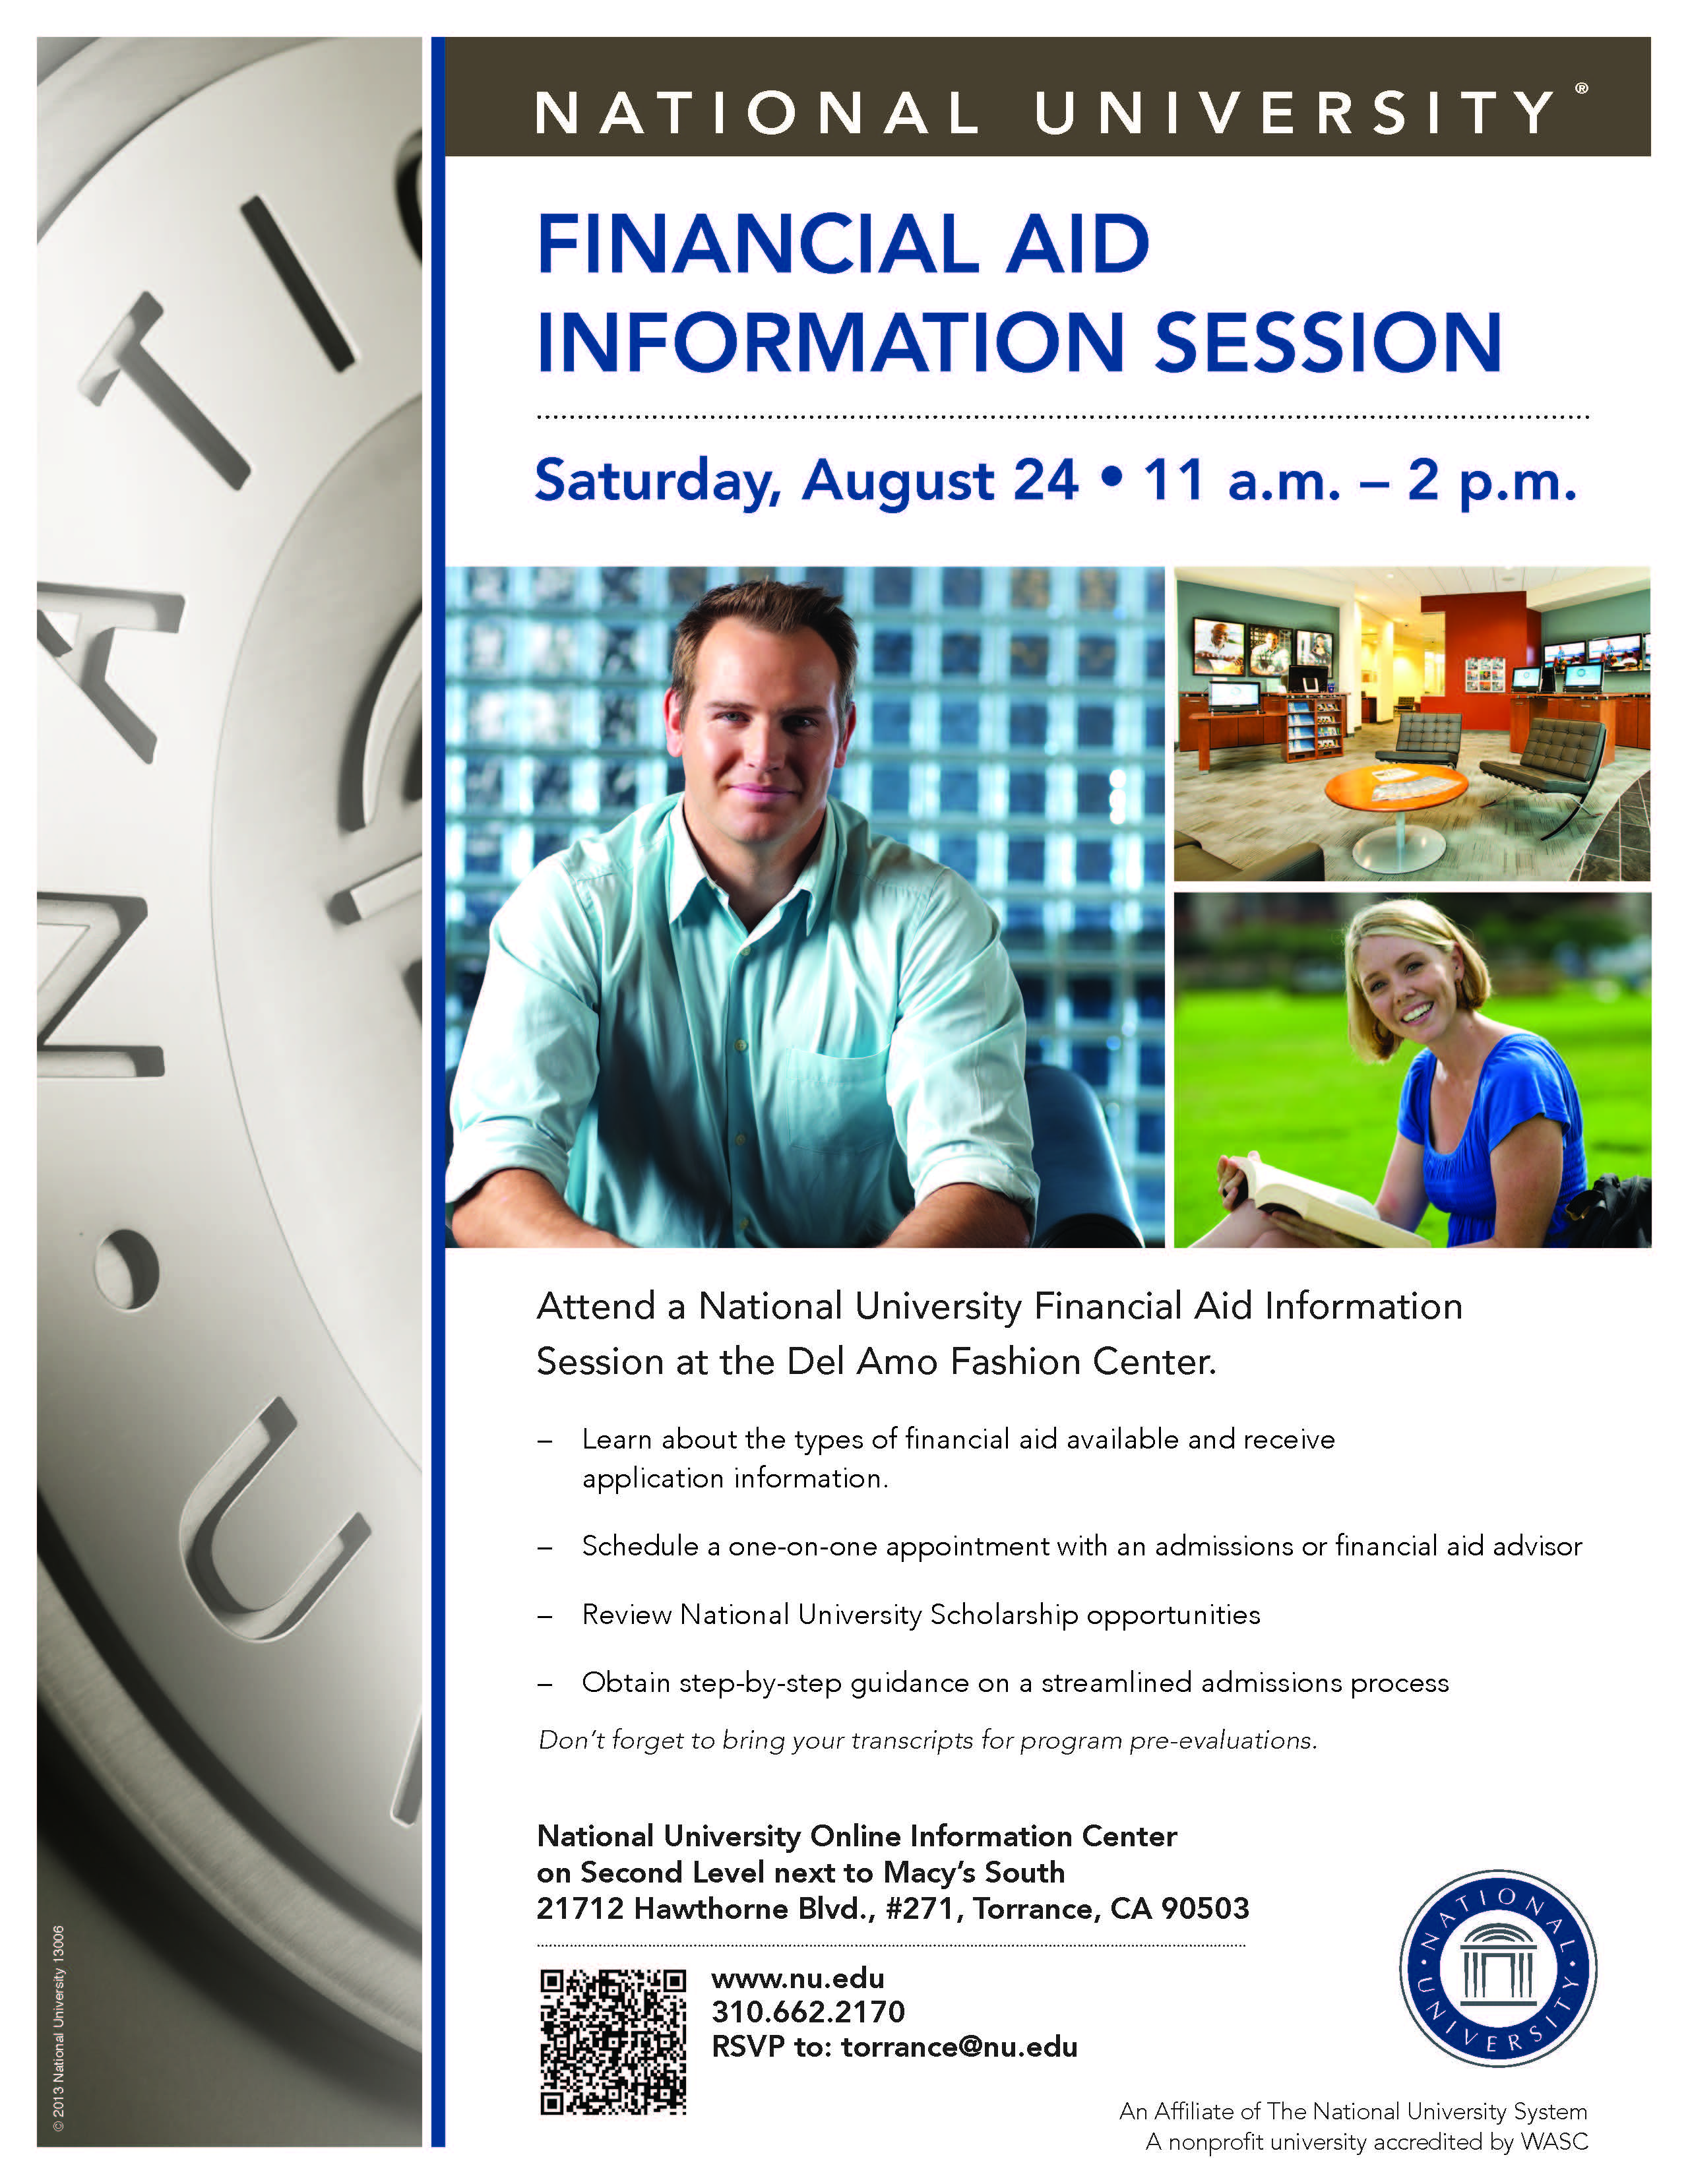 National University Torrance Financial Aid Information Session